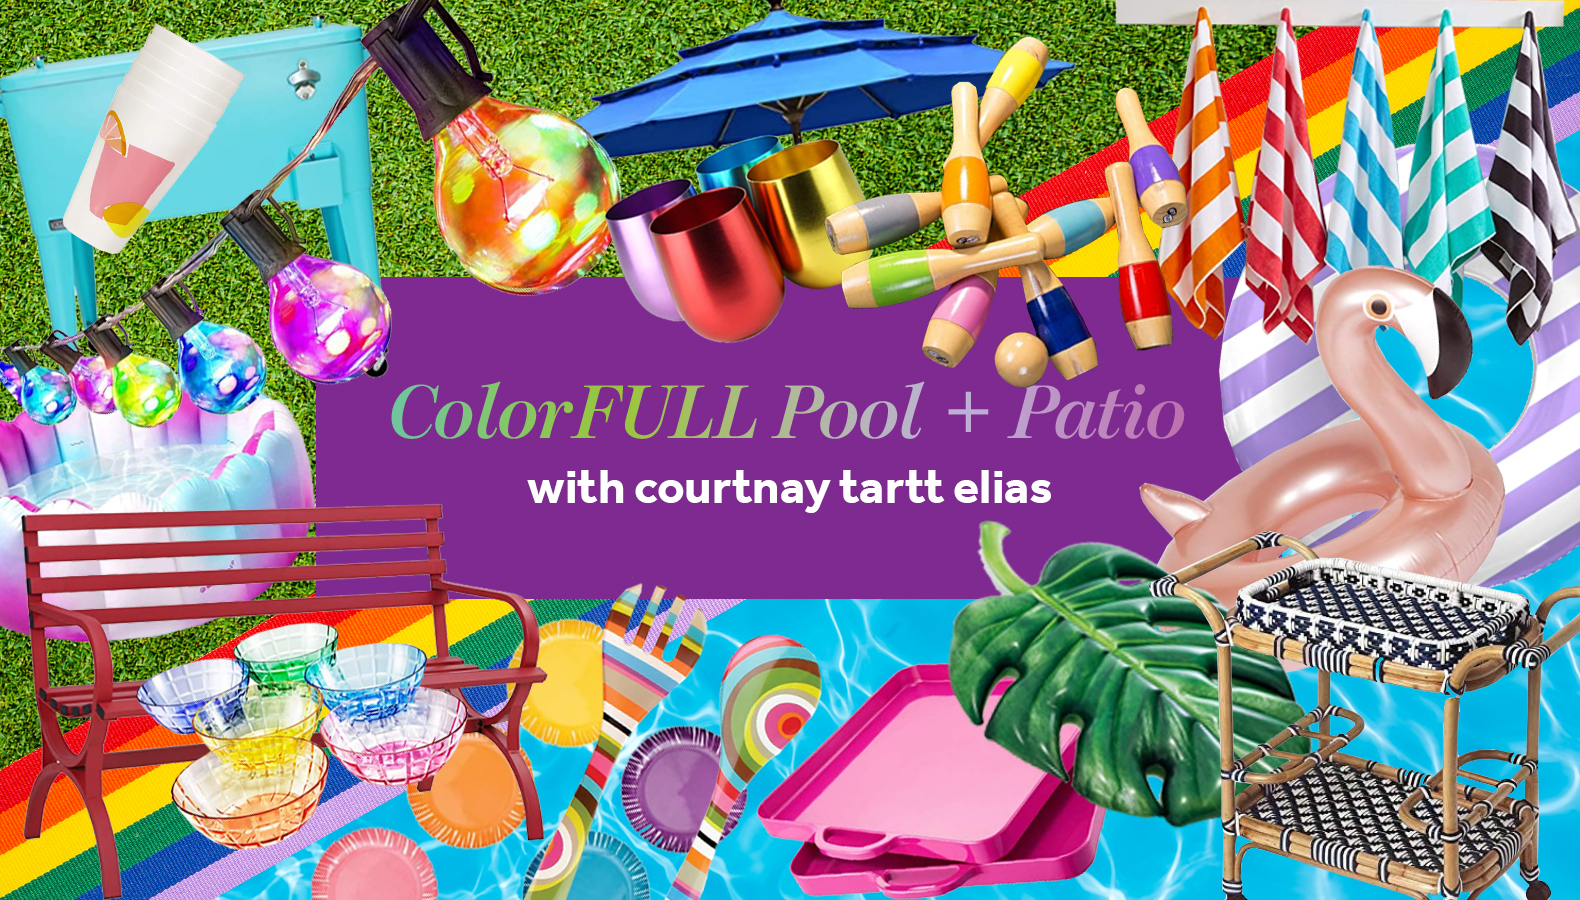 ColorFULL Pool and Patio